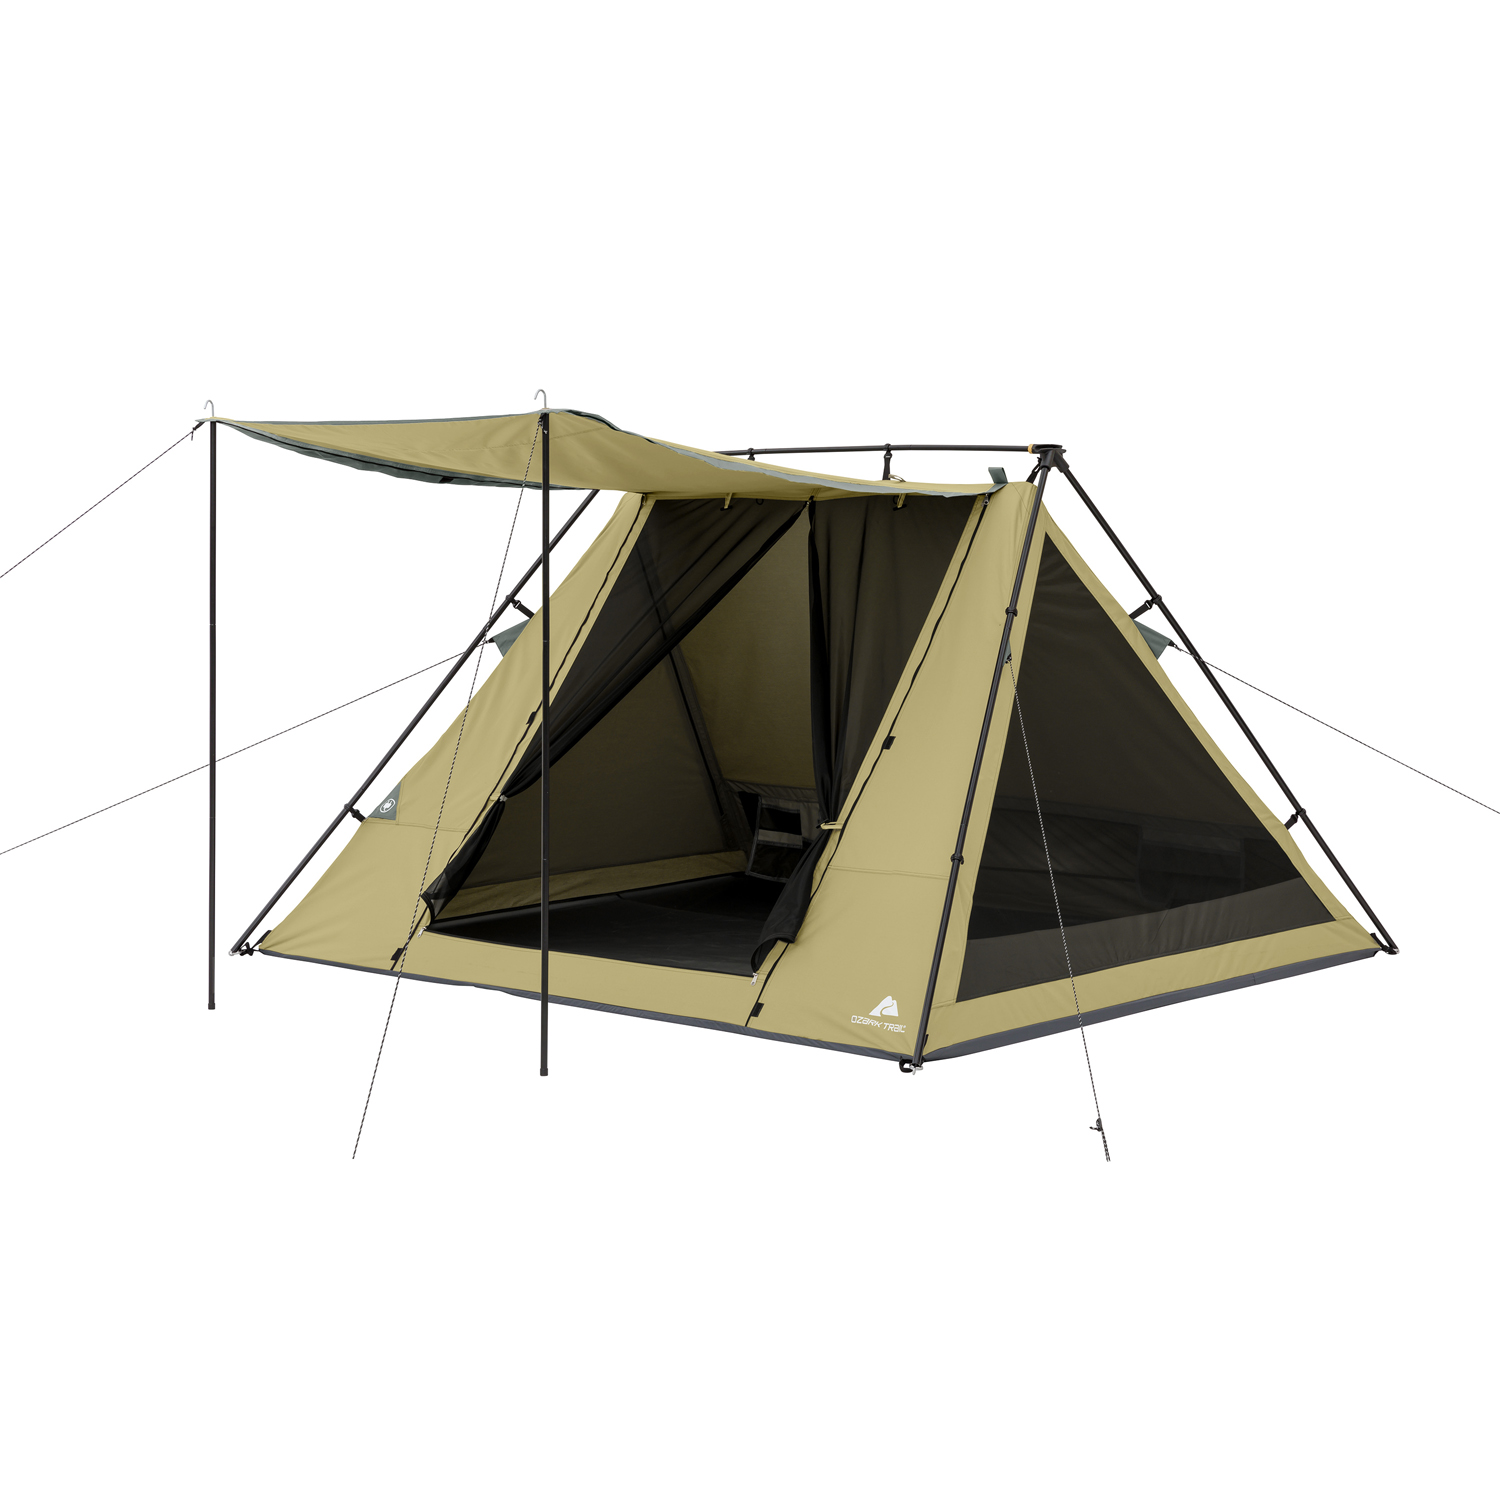 Ozark Trail 4 Person A-Frame Tent with Awning